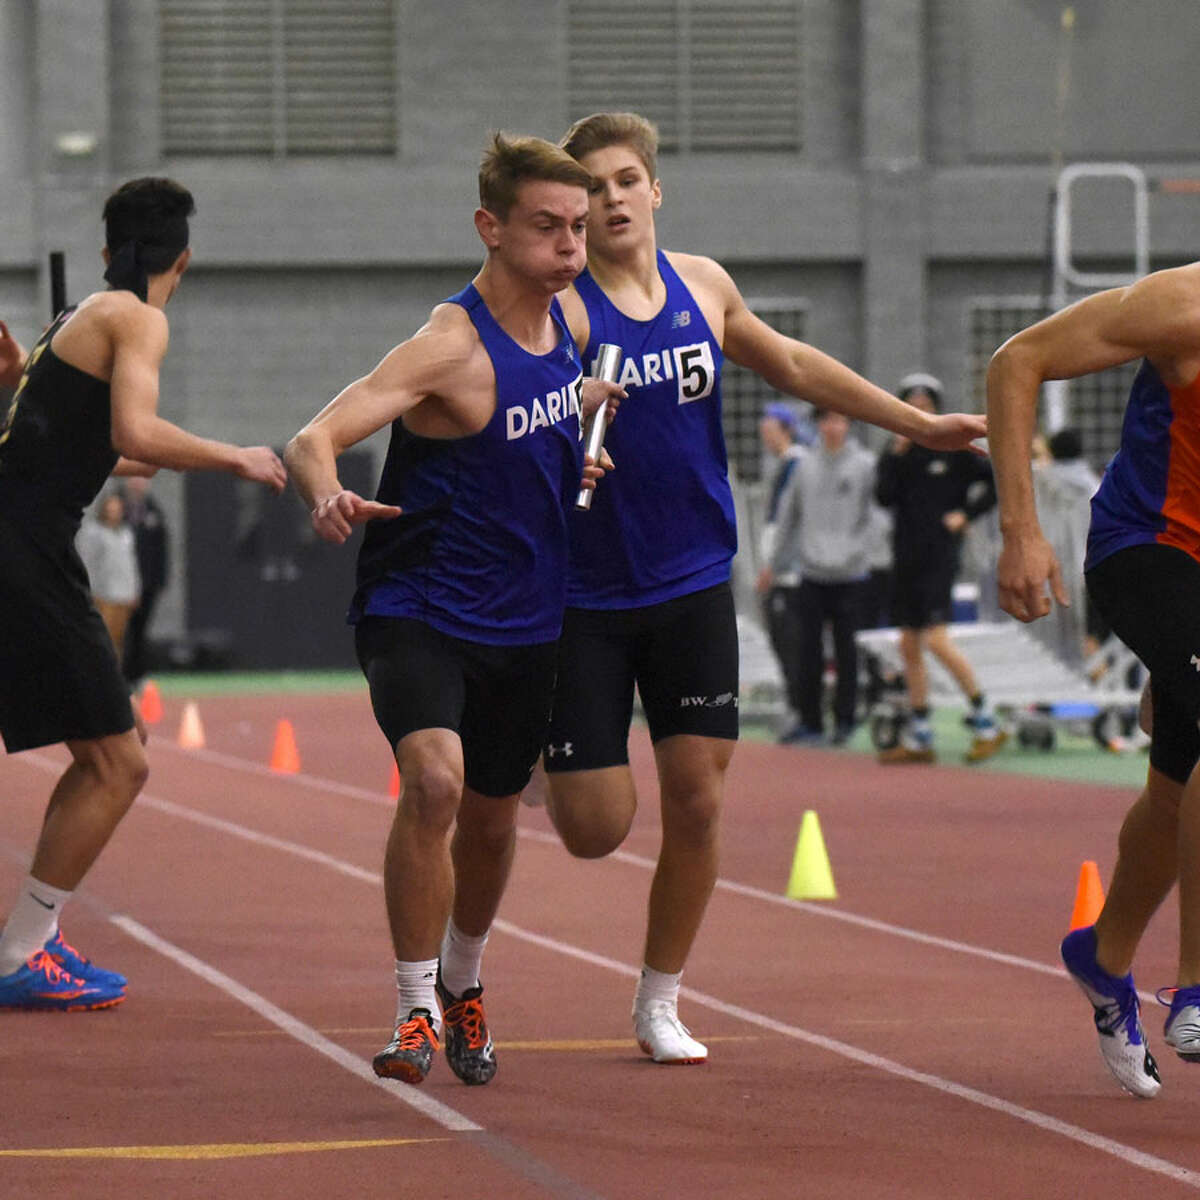 Darien's Jack Holly takes the baton from teammate Austin Dehmel during the 4x400 relay at the FCIAC indoor track and field championships in New Haven on Thursday, Jan. 31. - Dave Stewart/Hearst Connecticut Media photo